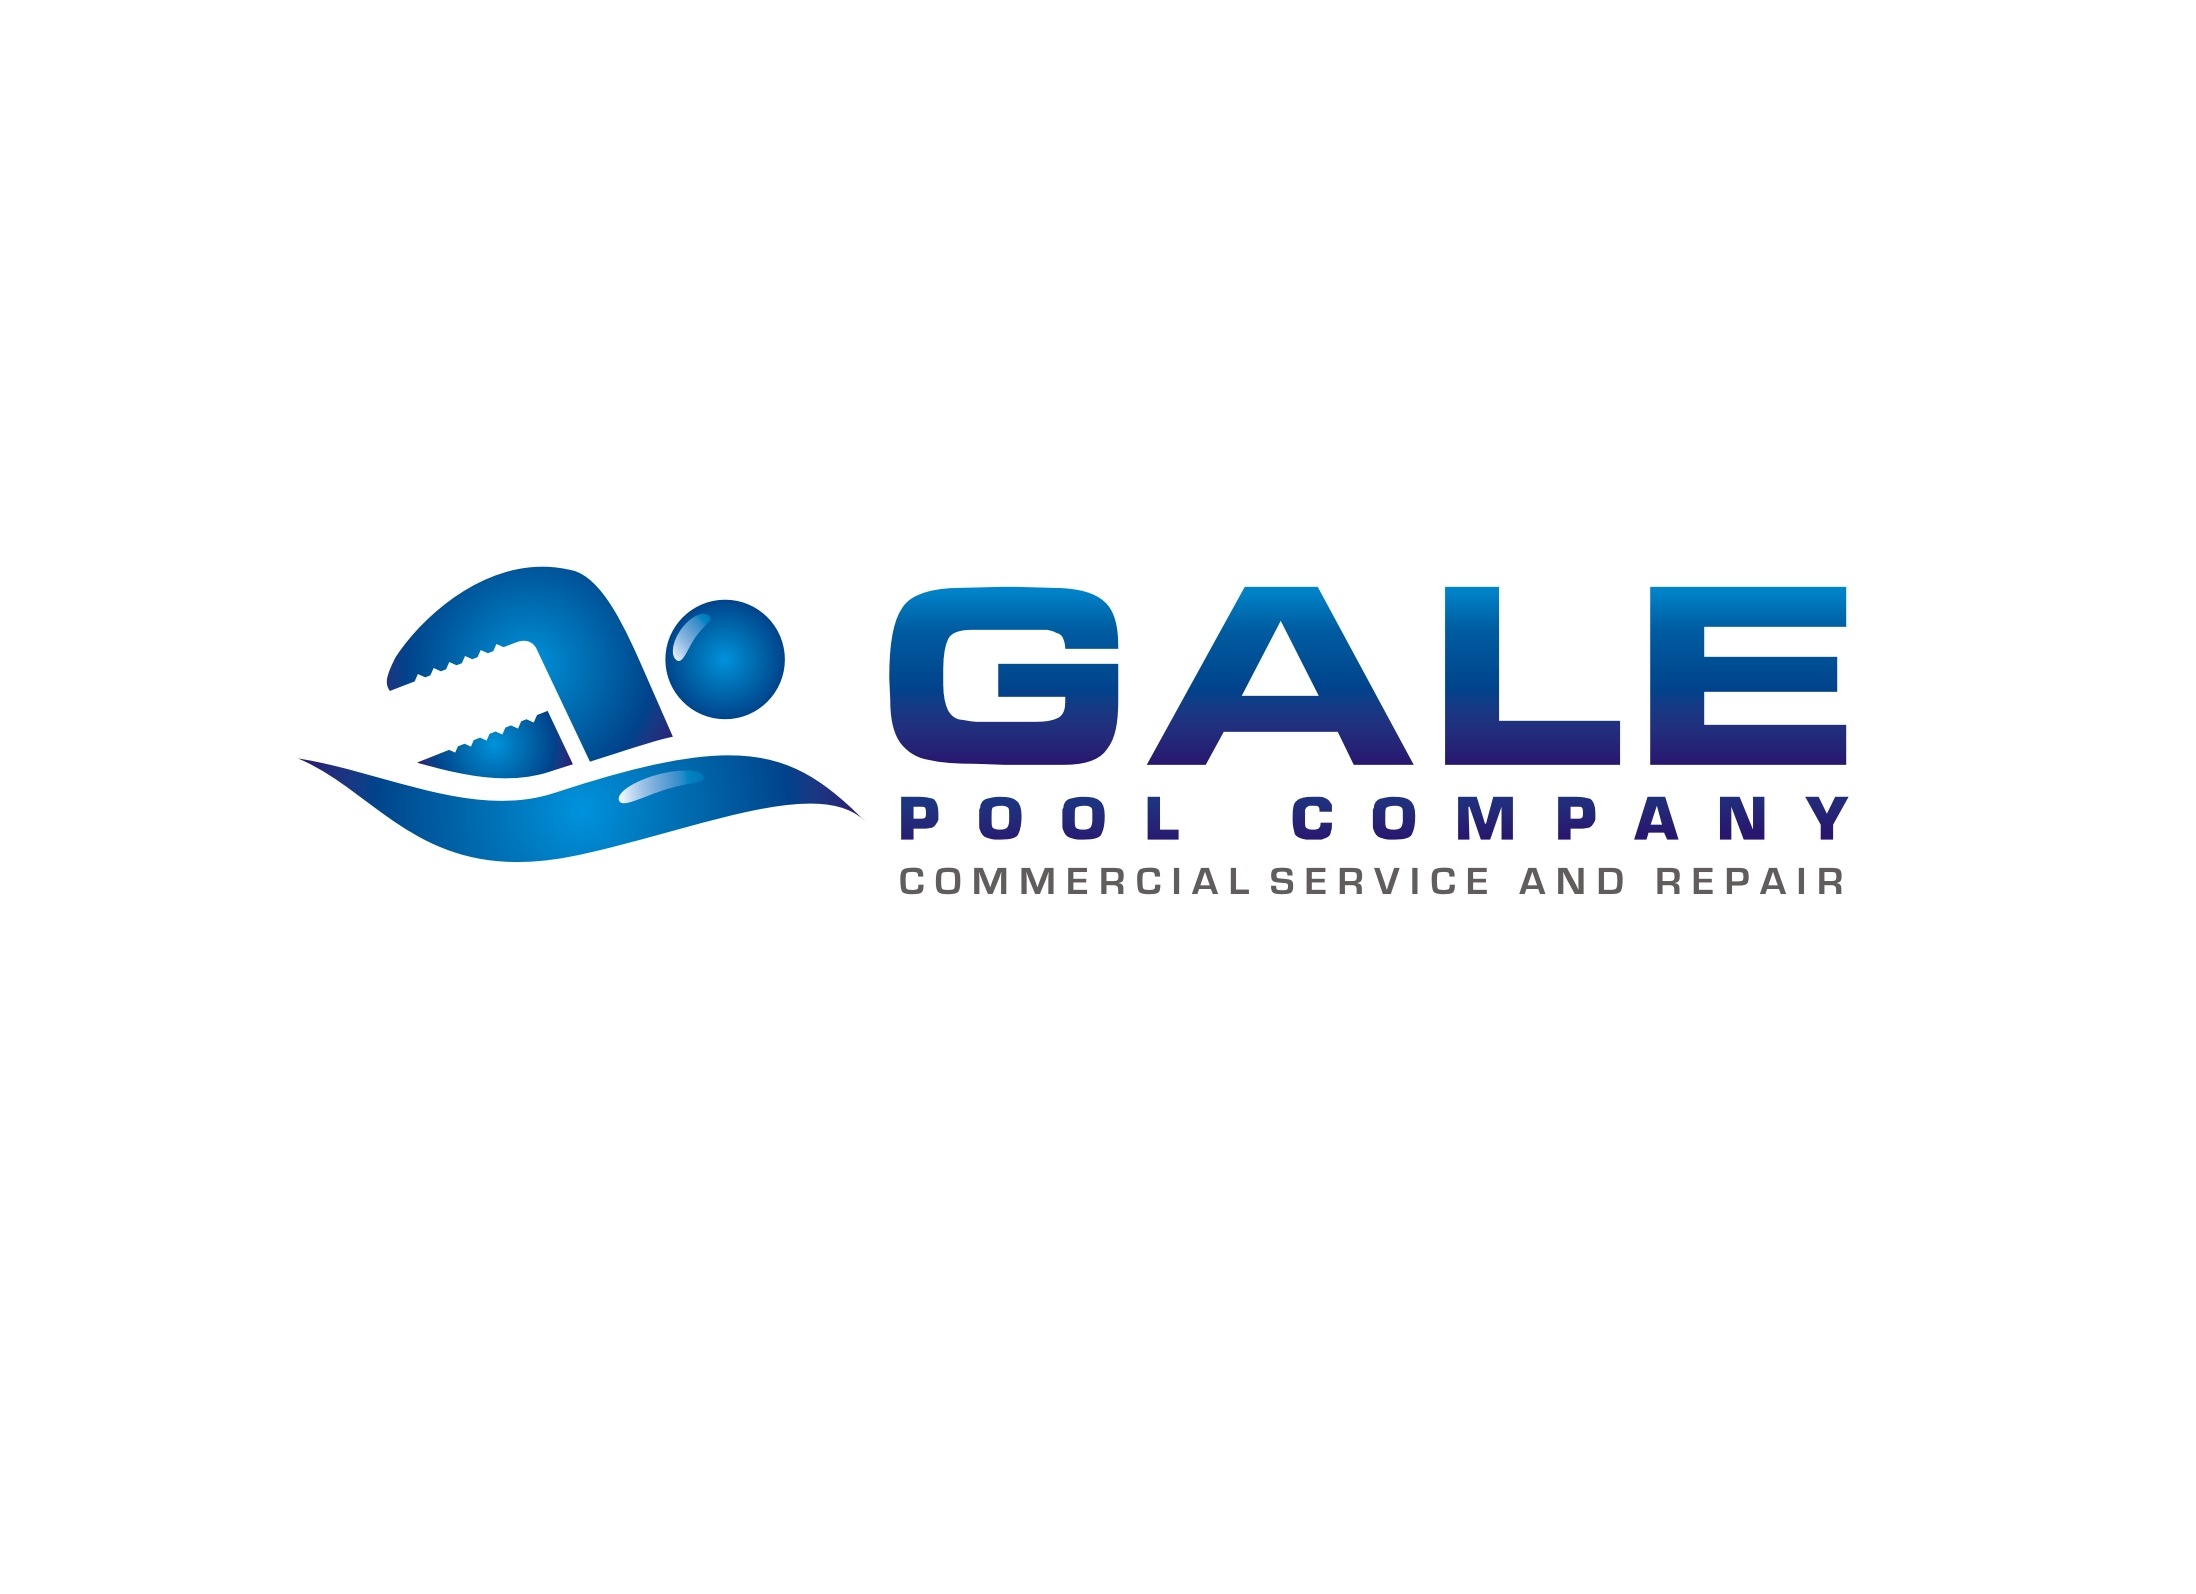 Logo Design by Zdravko Krulj - Entry No. 108 in the Logo Design Contest Imaginative Logo Design for Gale Pool Company.